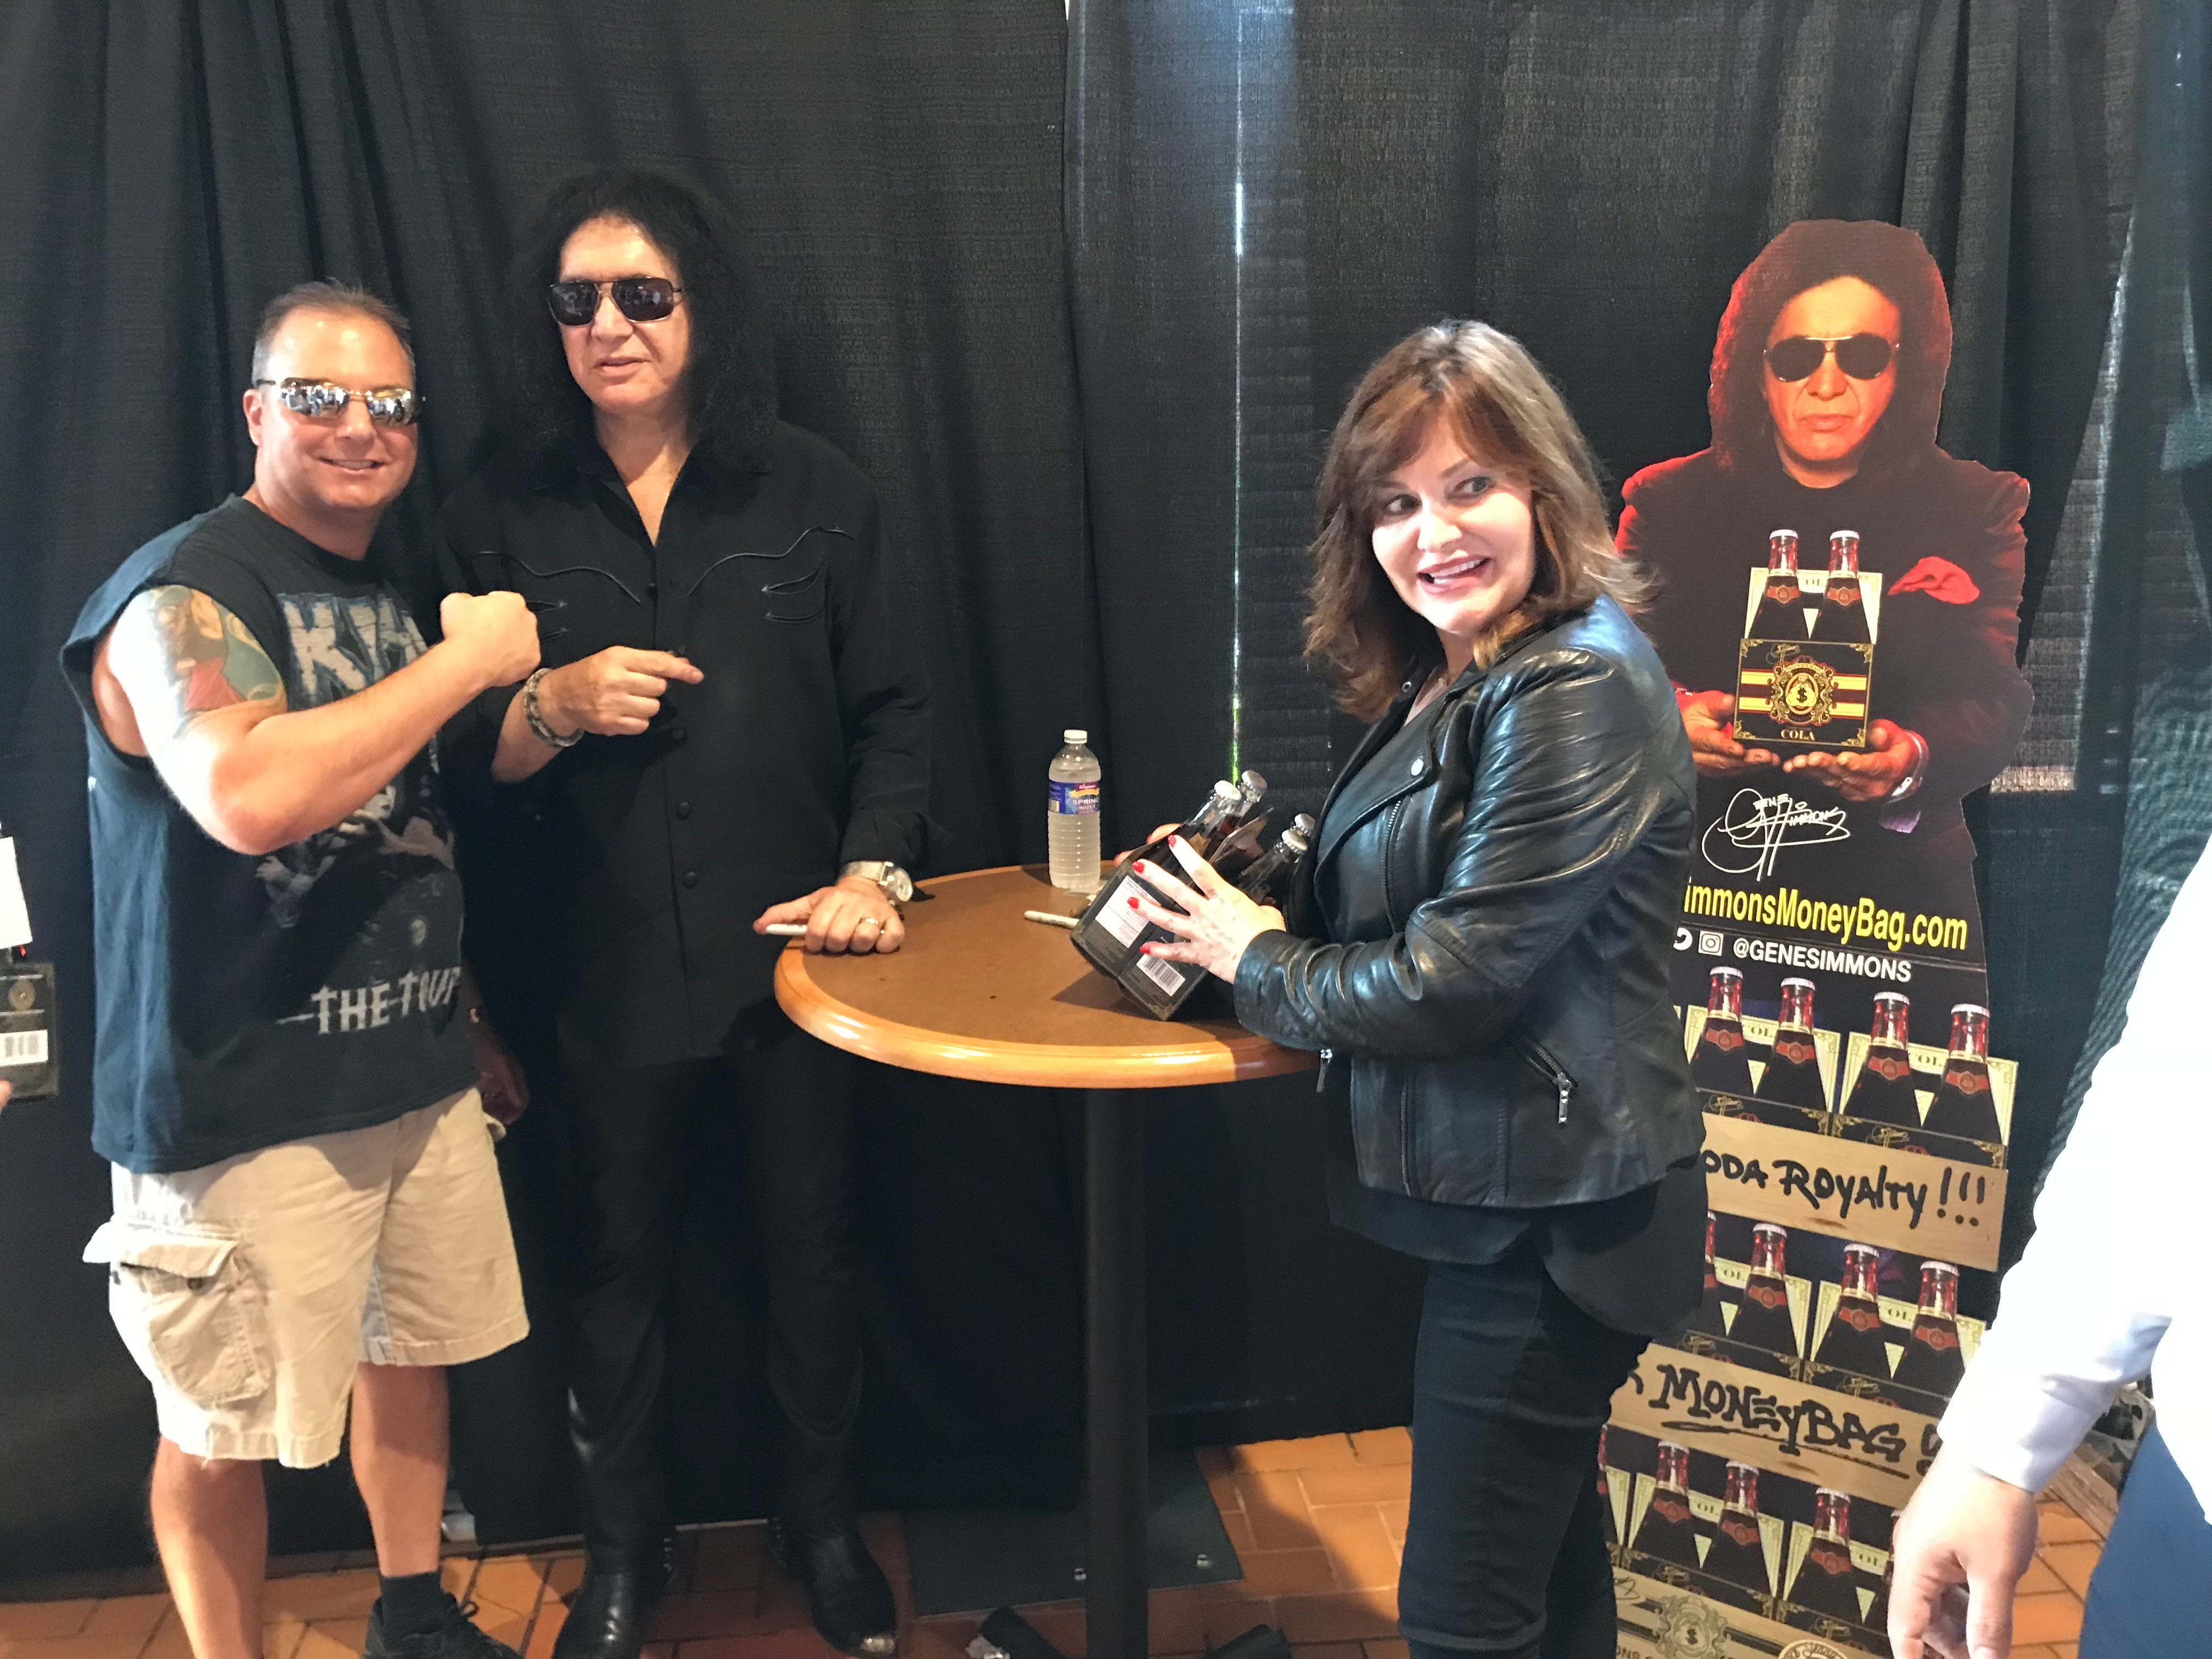 Gene Simmons poses with people near new soda line.